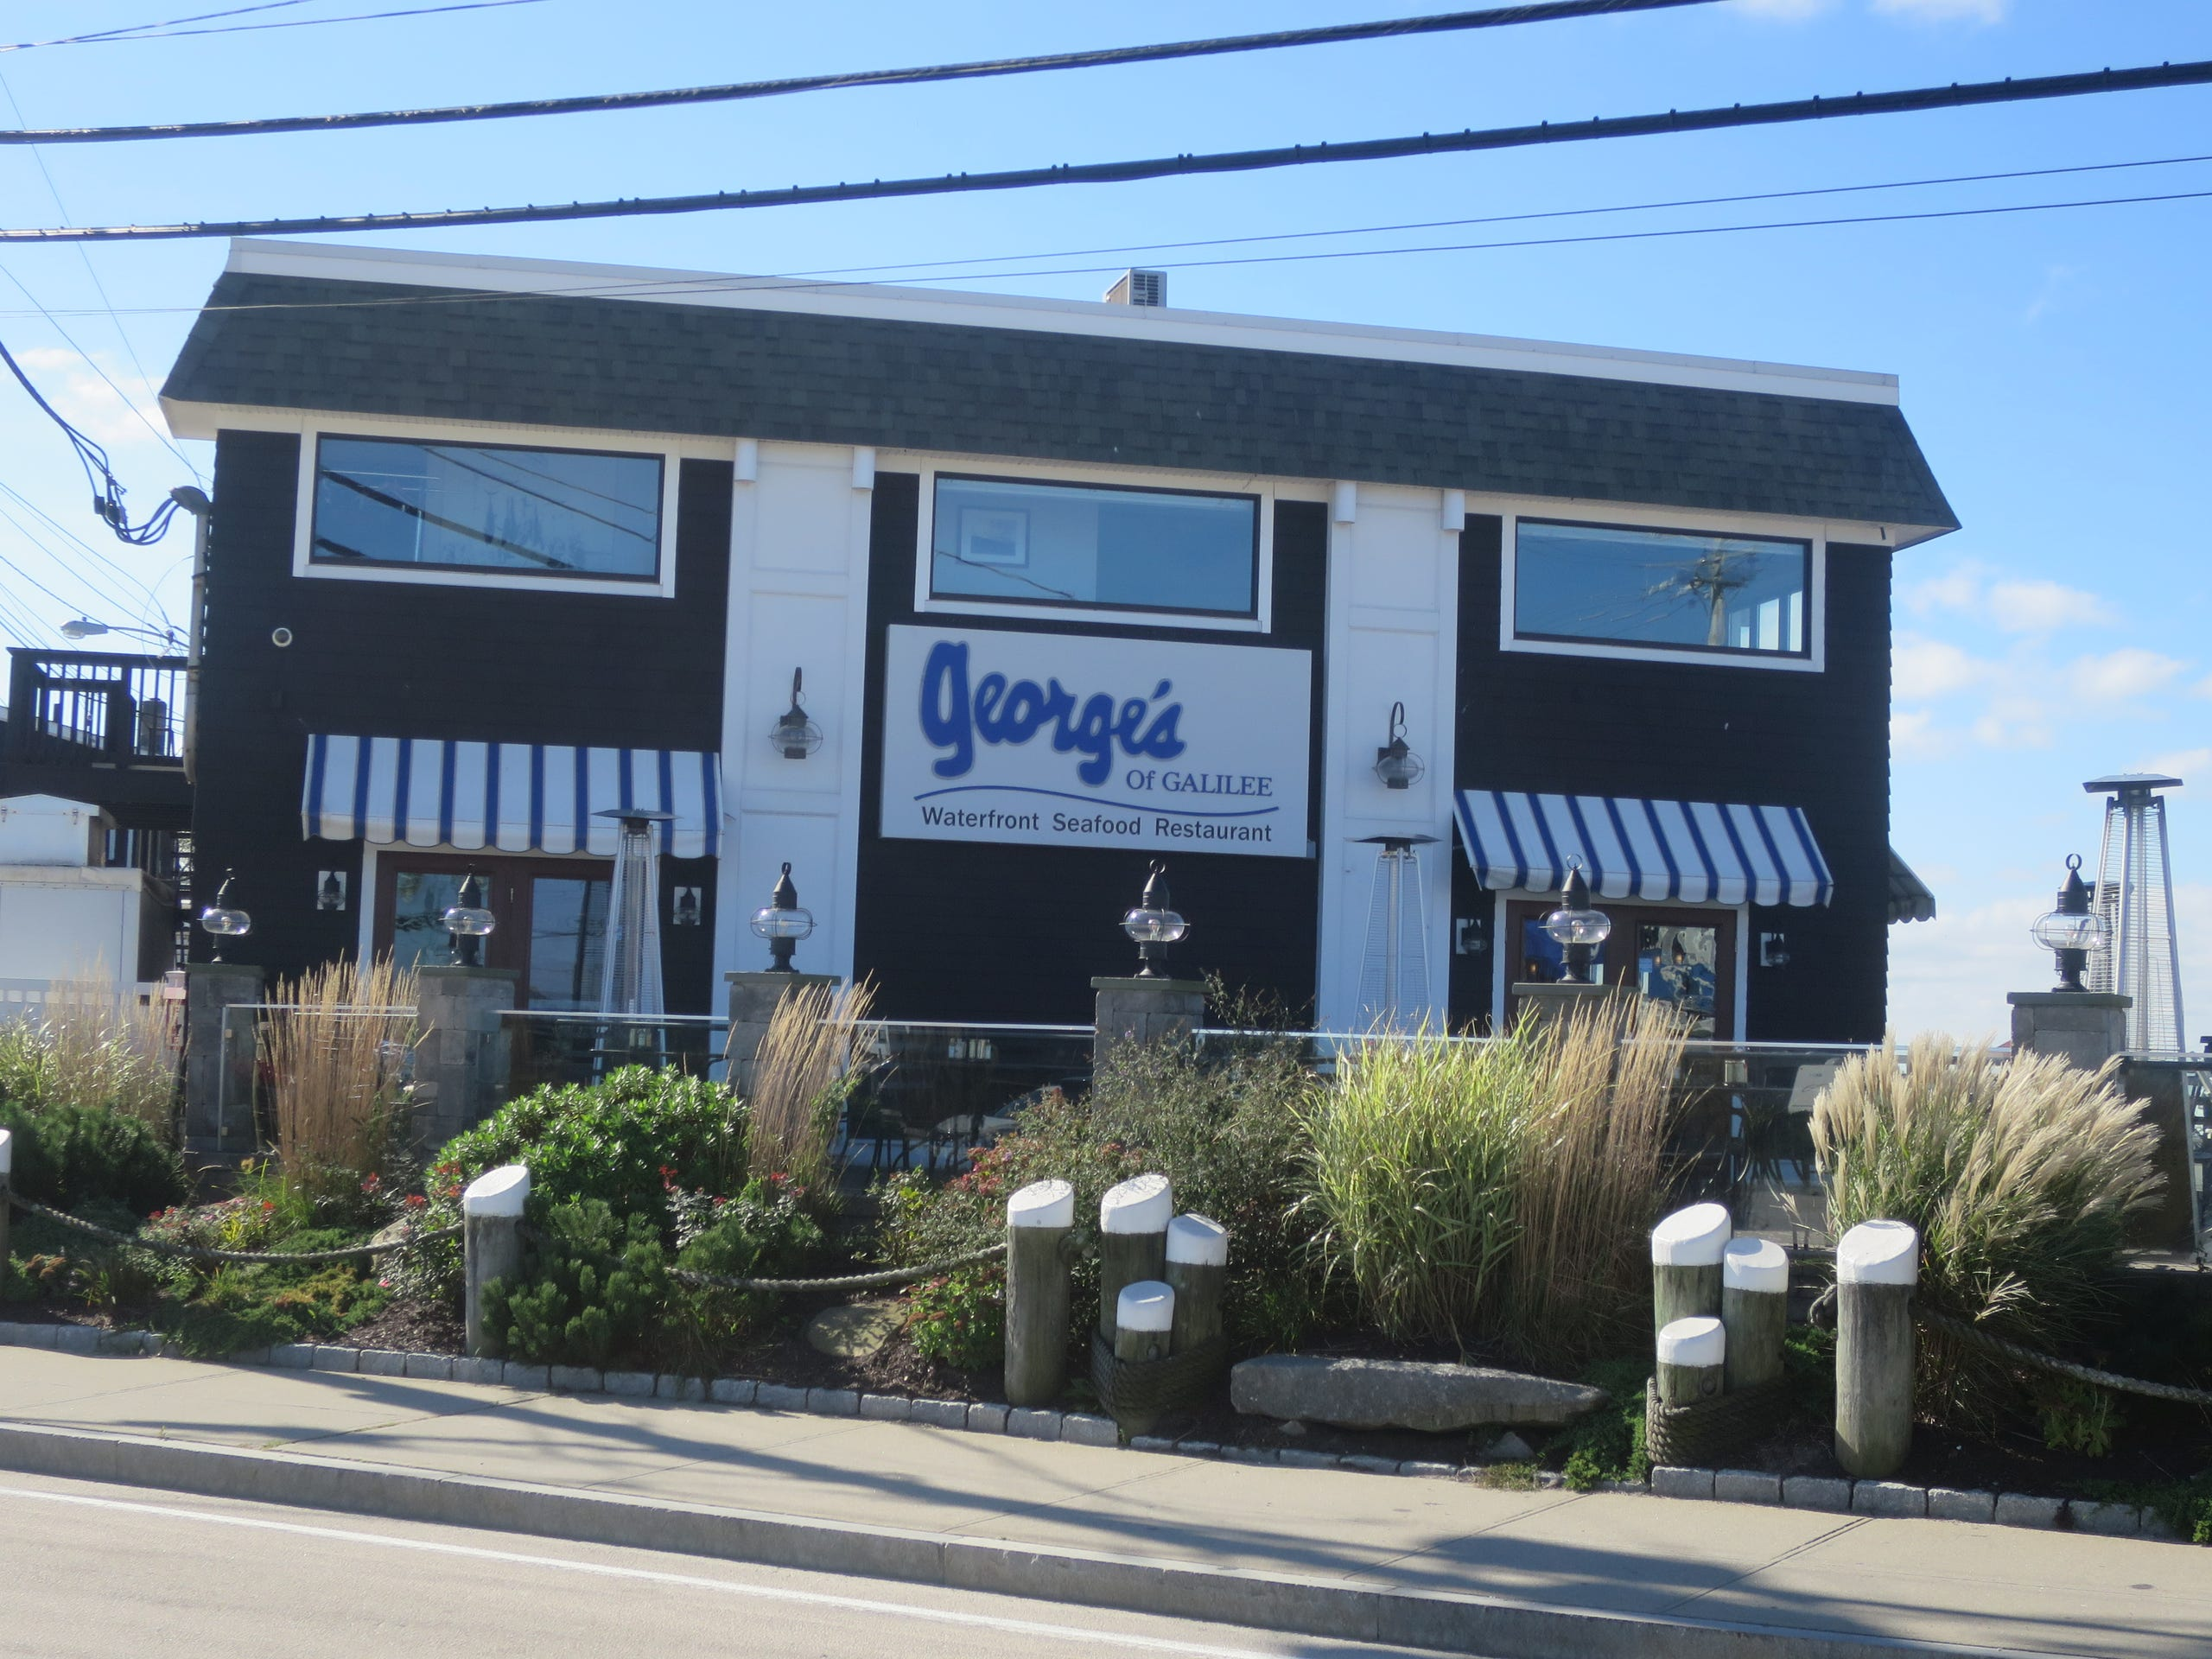 George S Of Galilee Superlative Seafood Specialties In